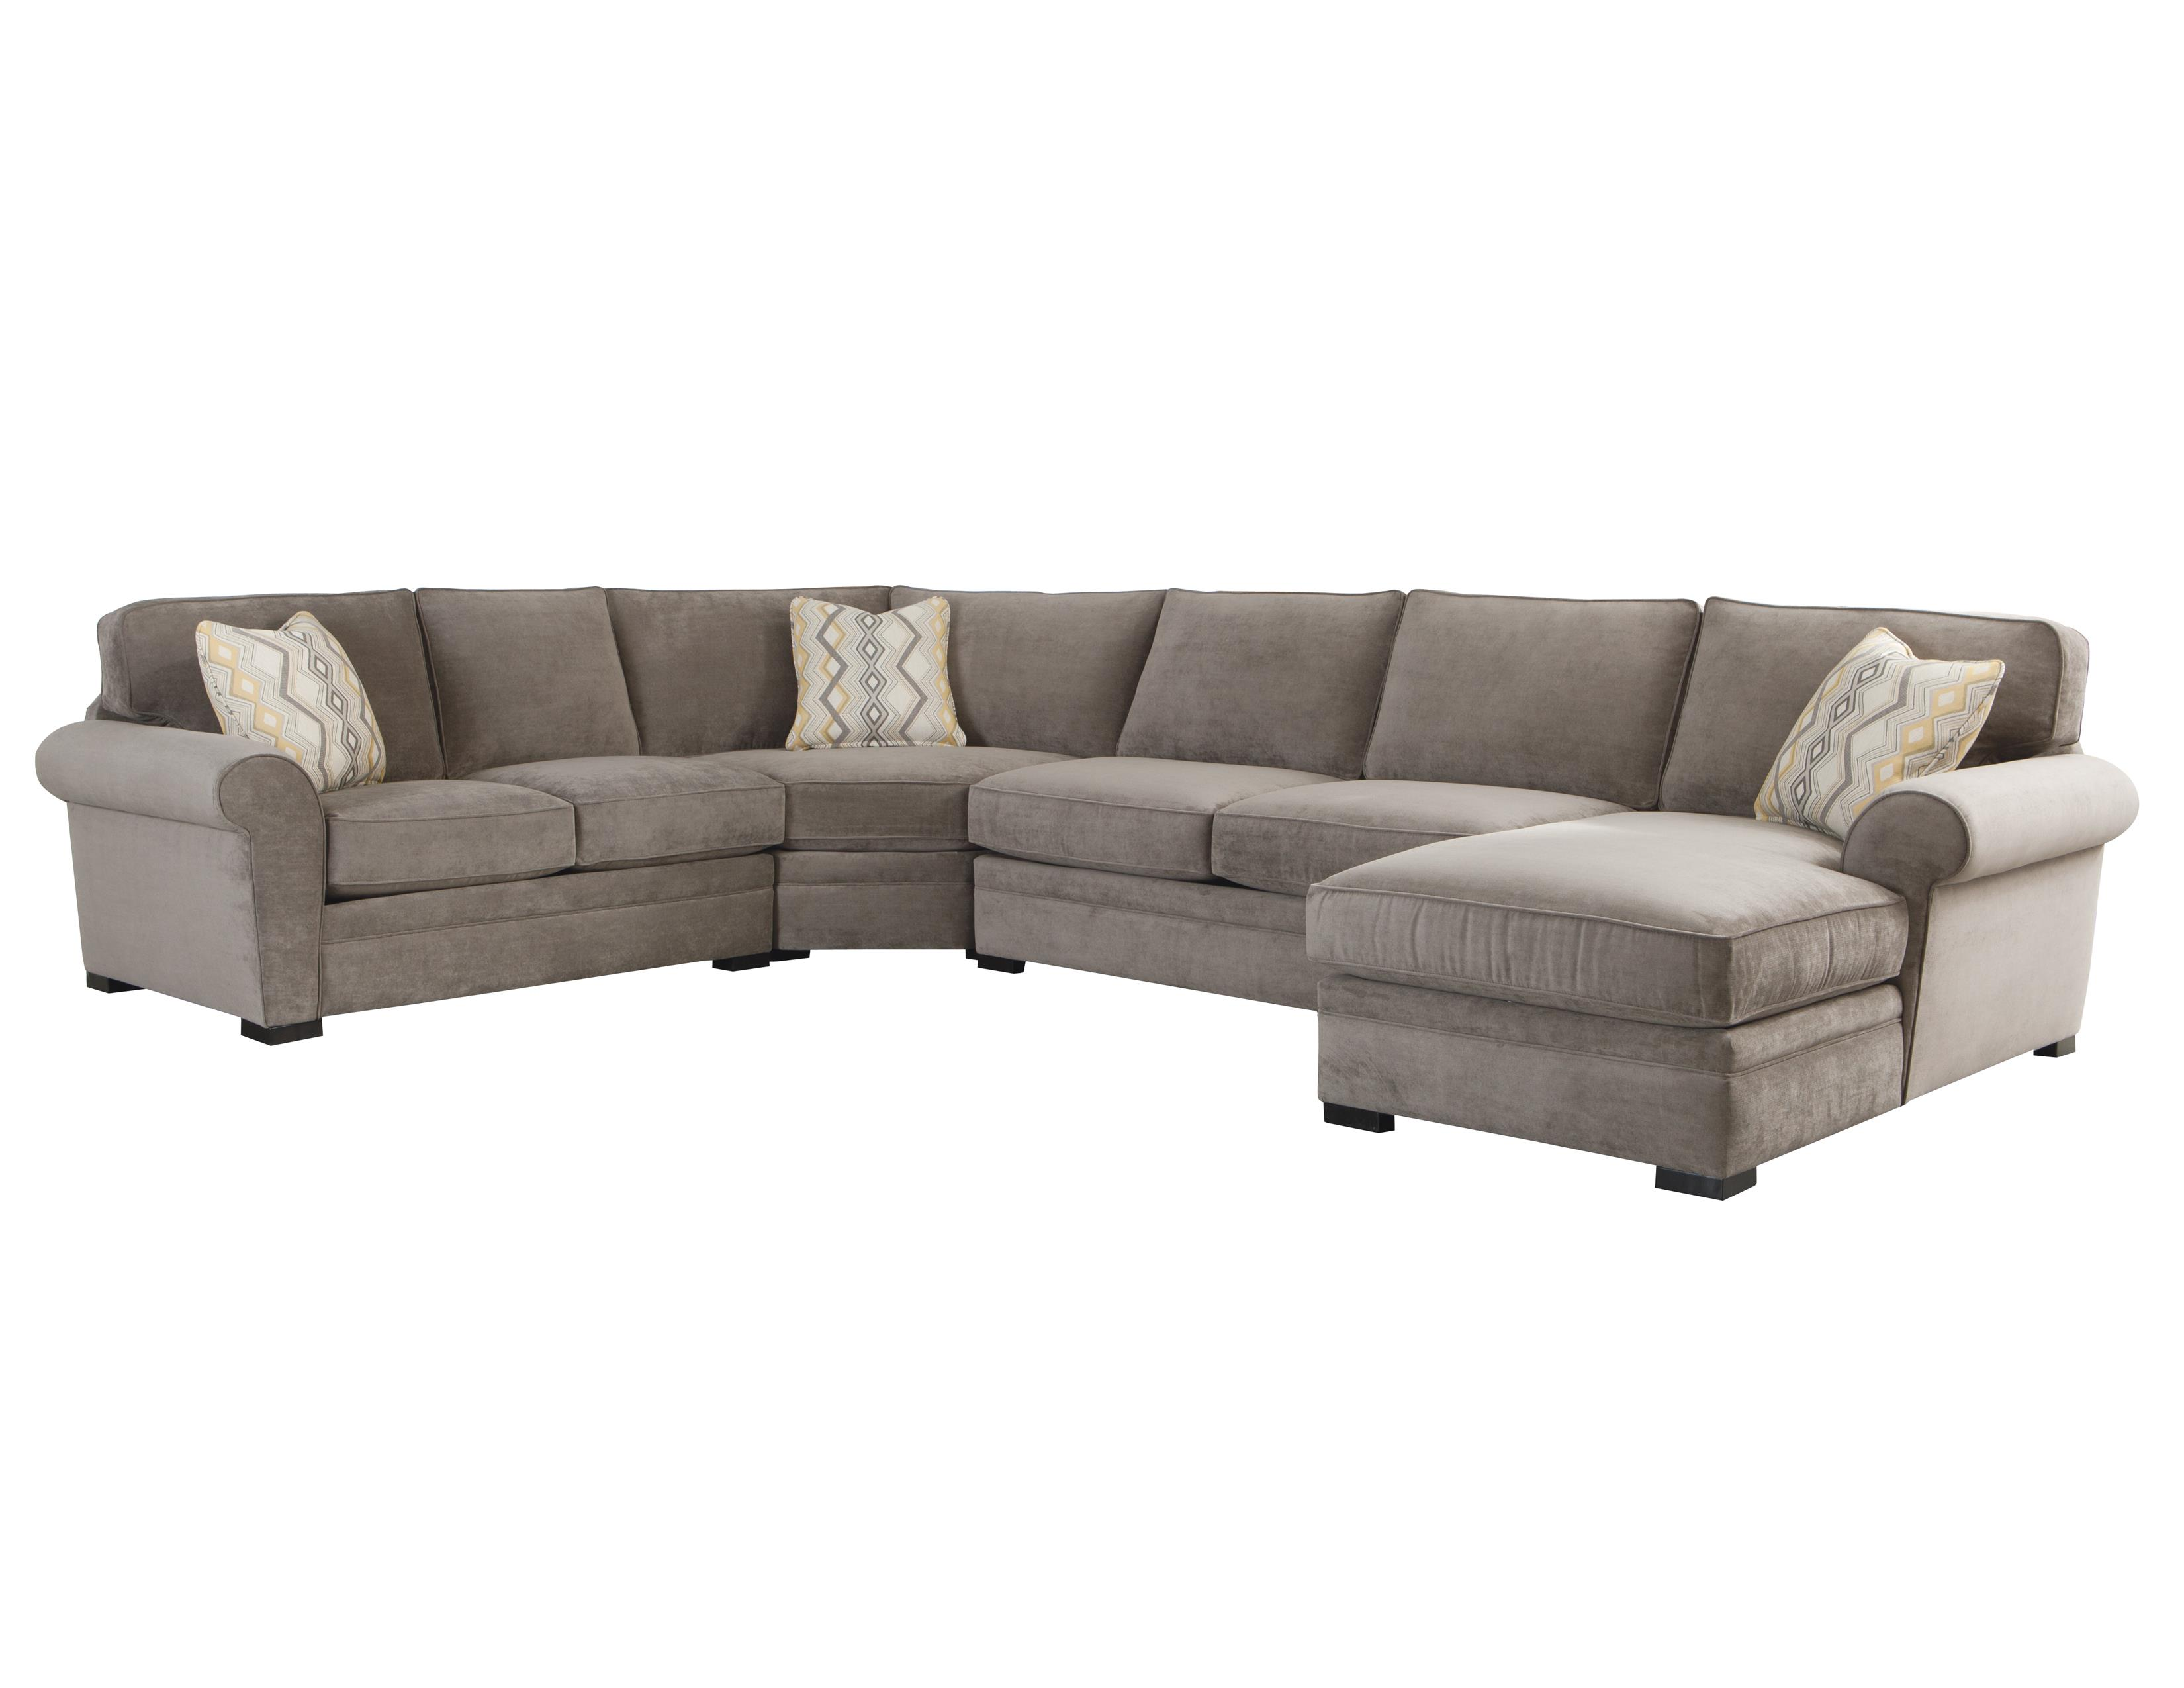 Sectional Bed Sofa Choices Orion Sectional By Jonathan Louis At Homeworld Furniture